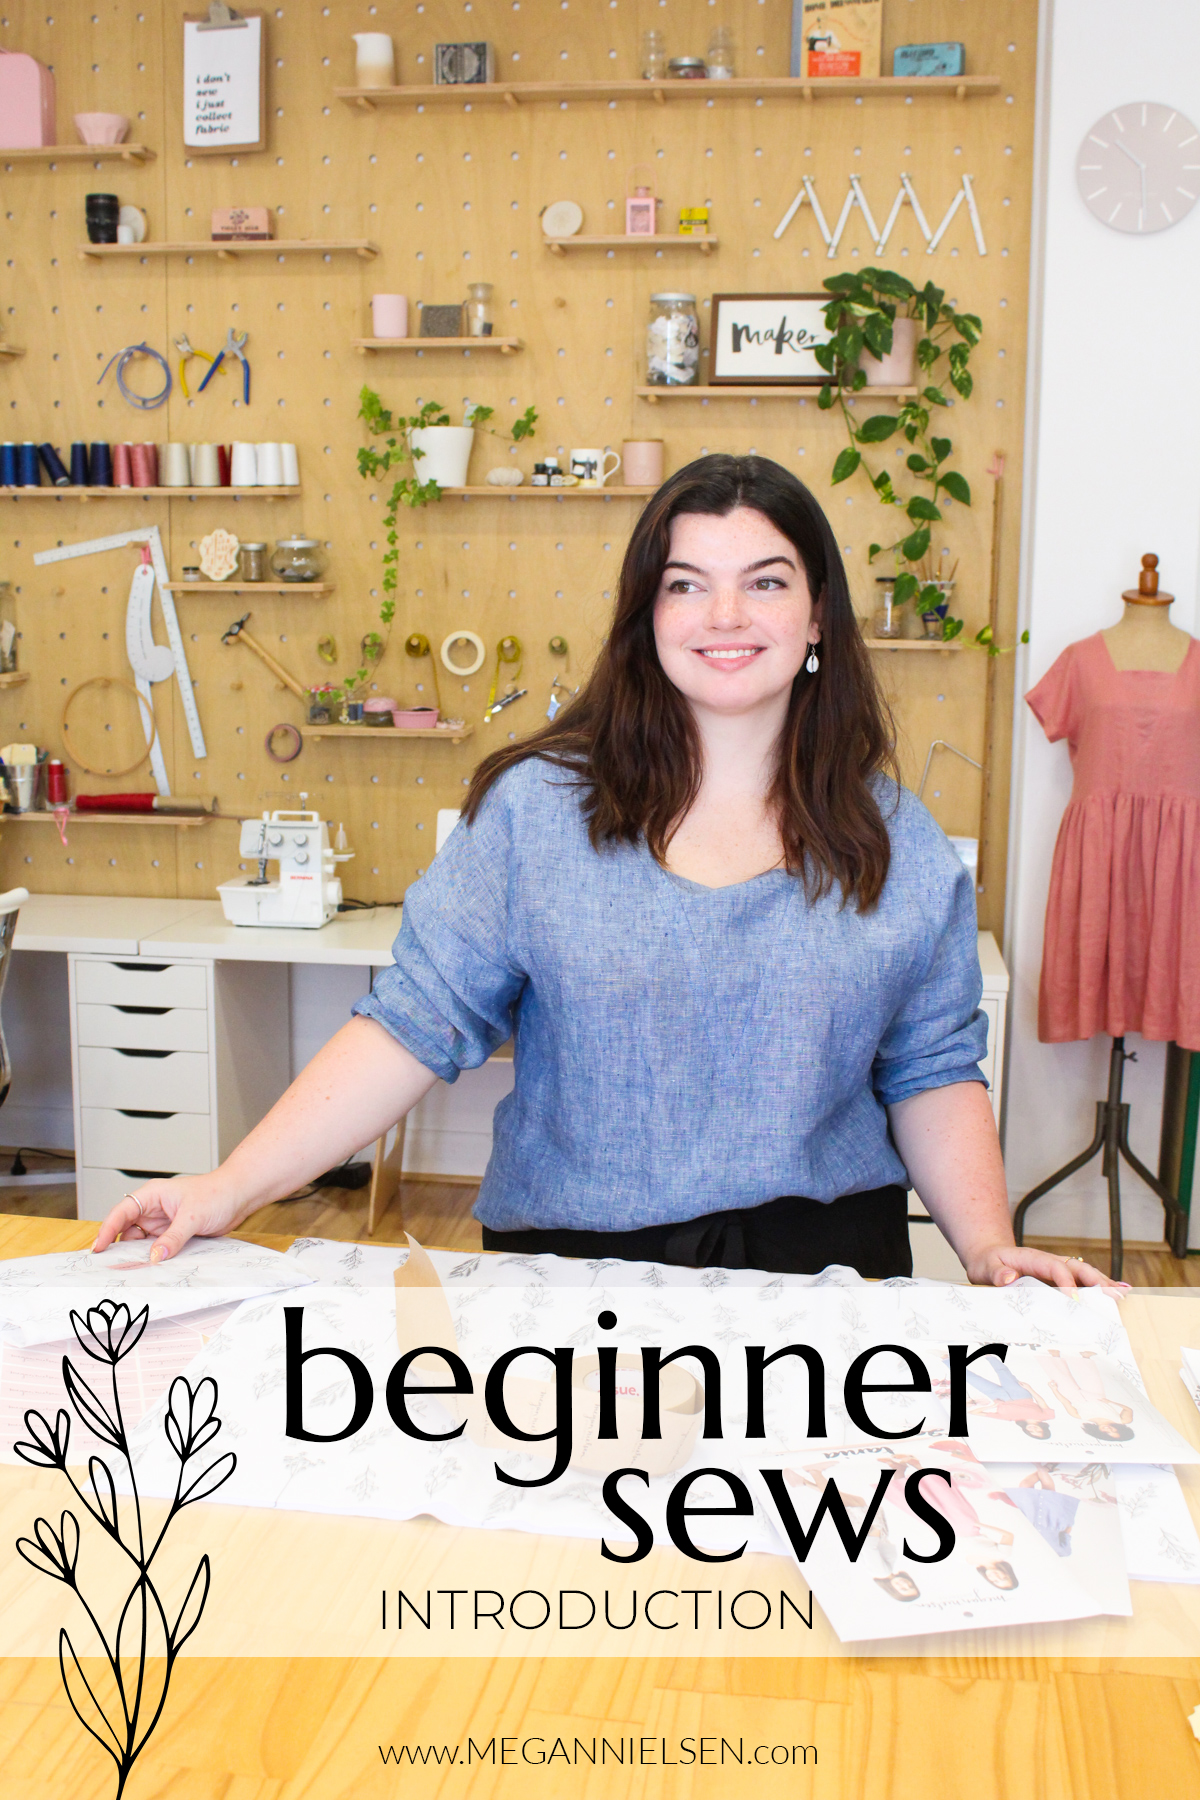 Beginner Sews - An introduction